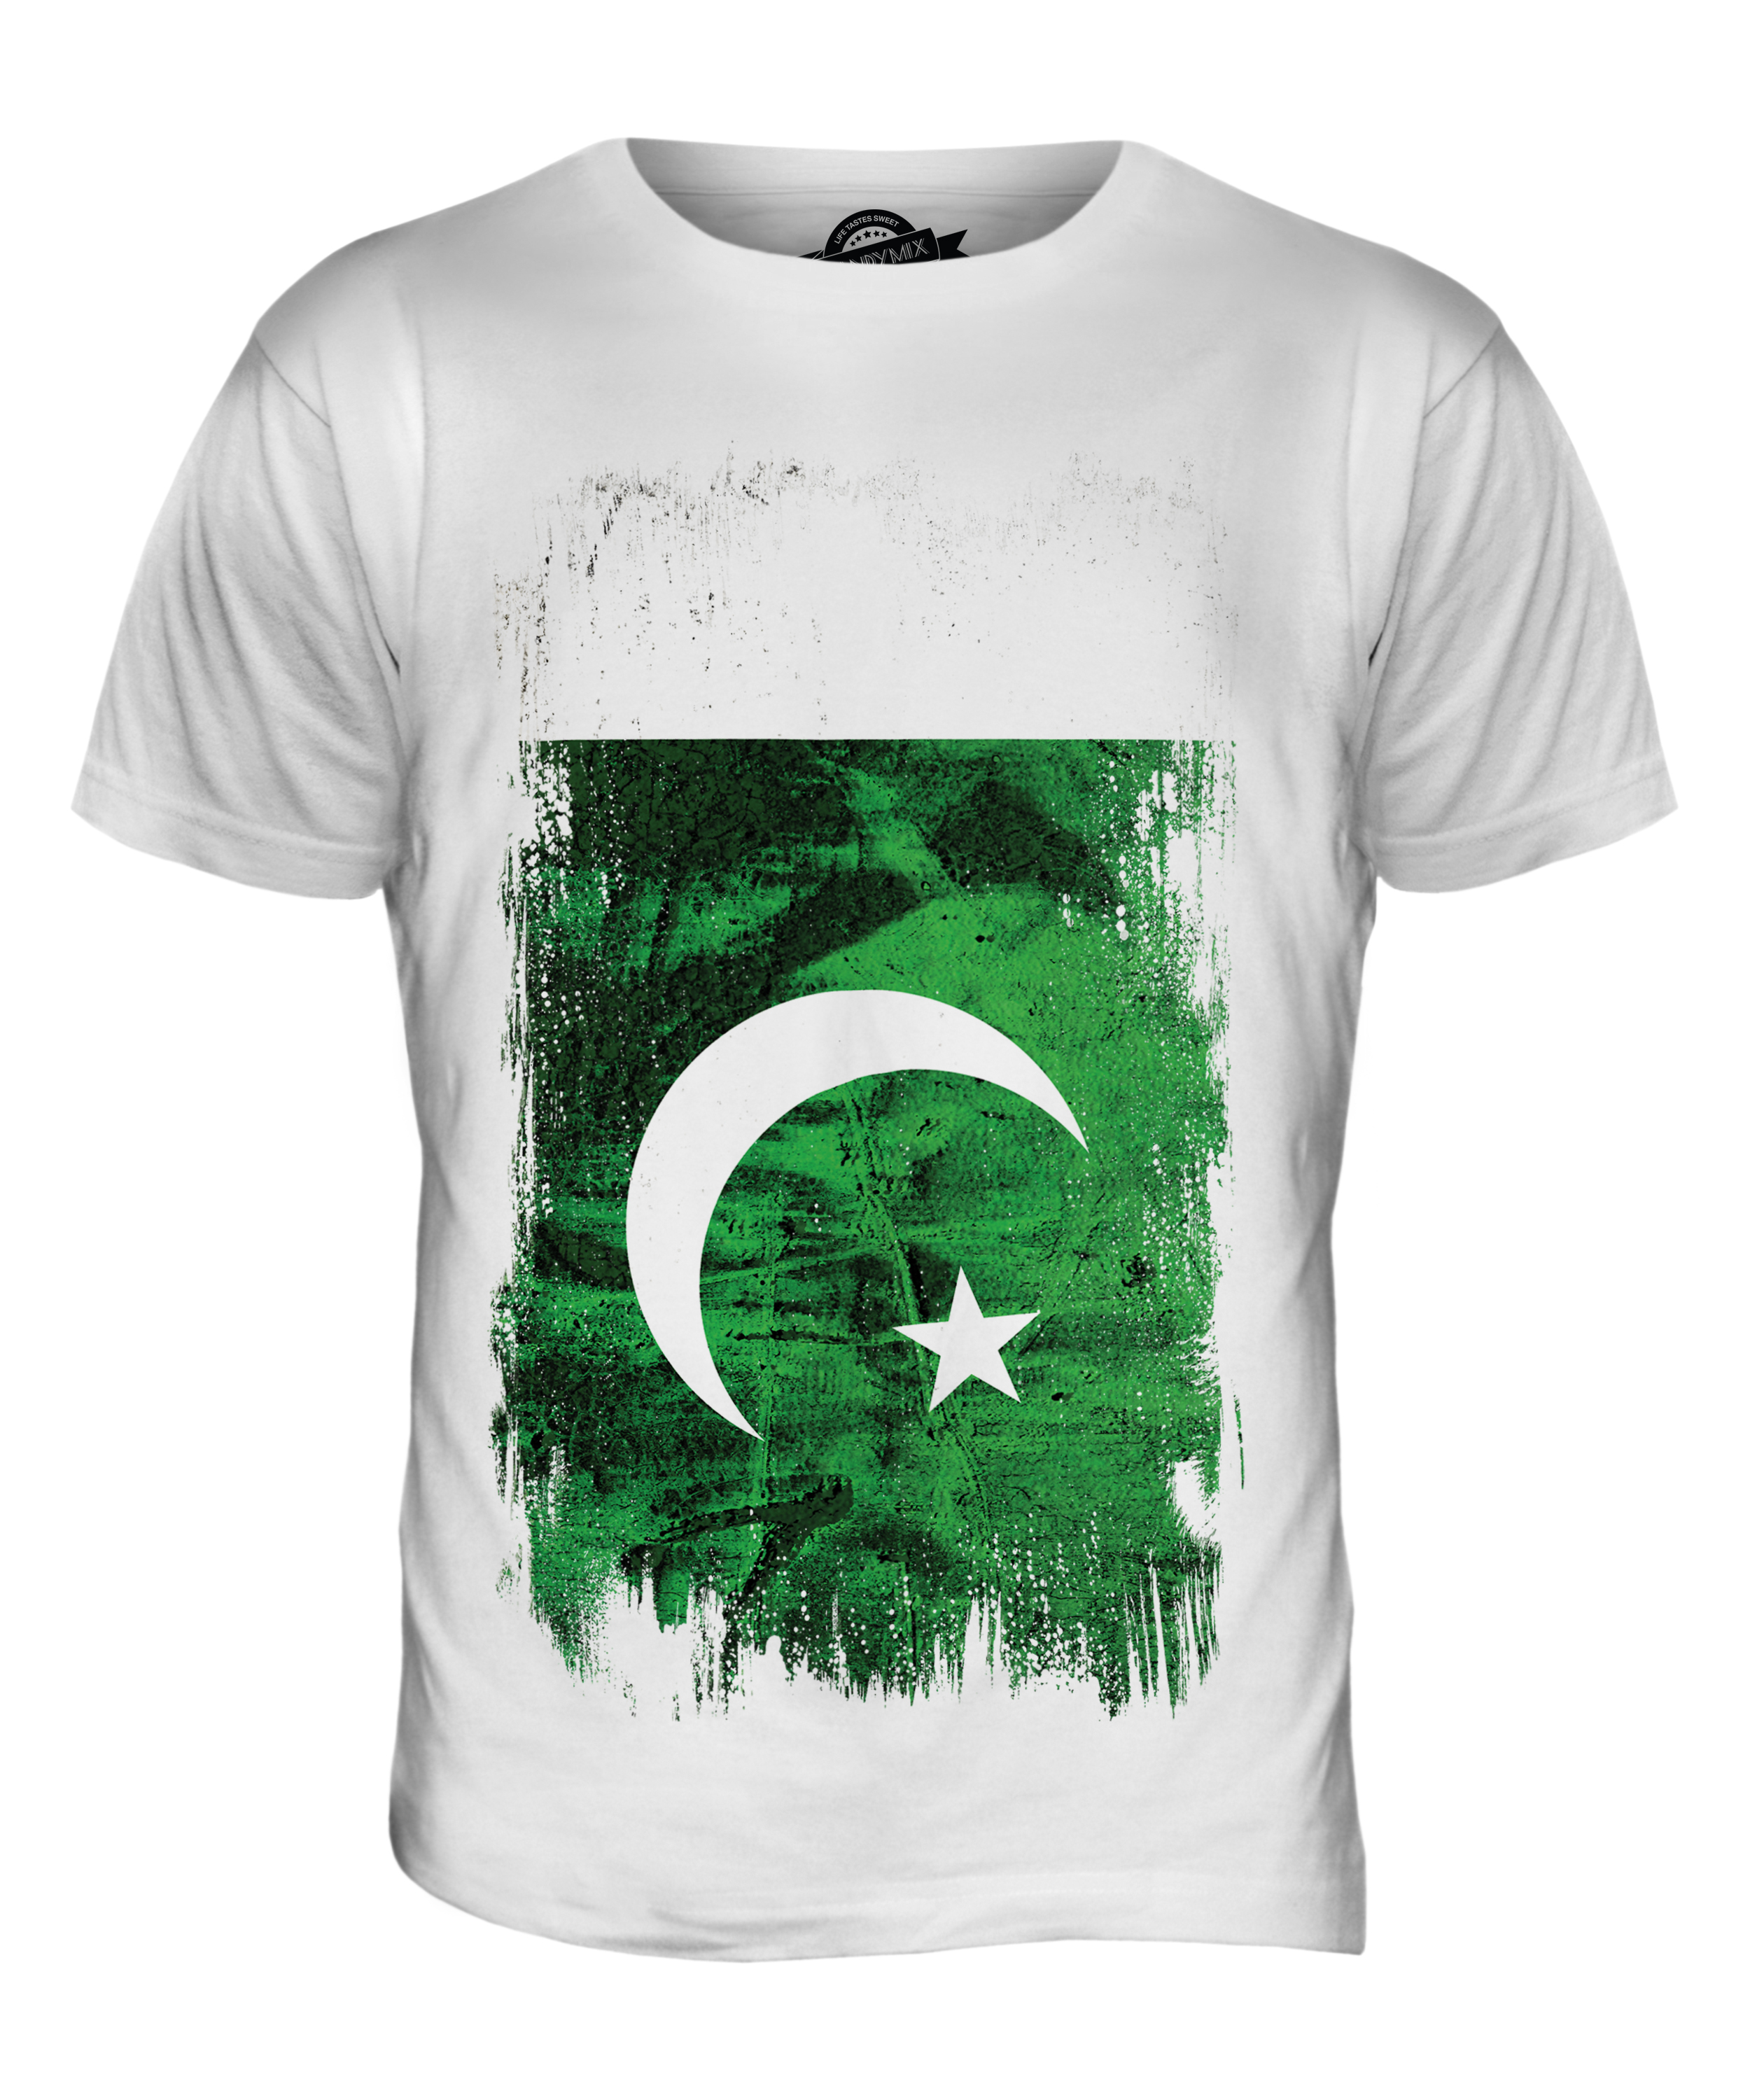 ec52609e847 Football T Shirts Pakistan - DREAMWORKS